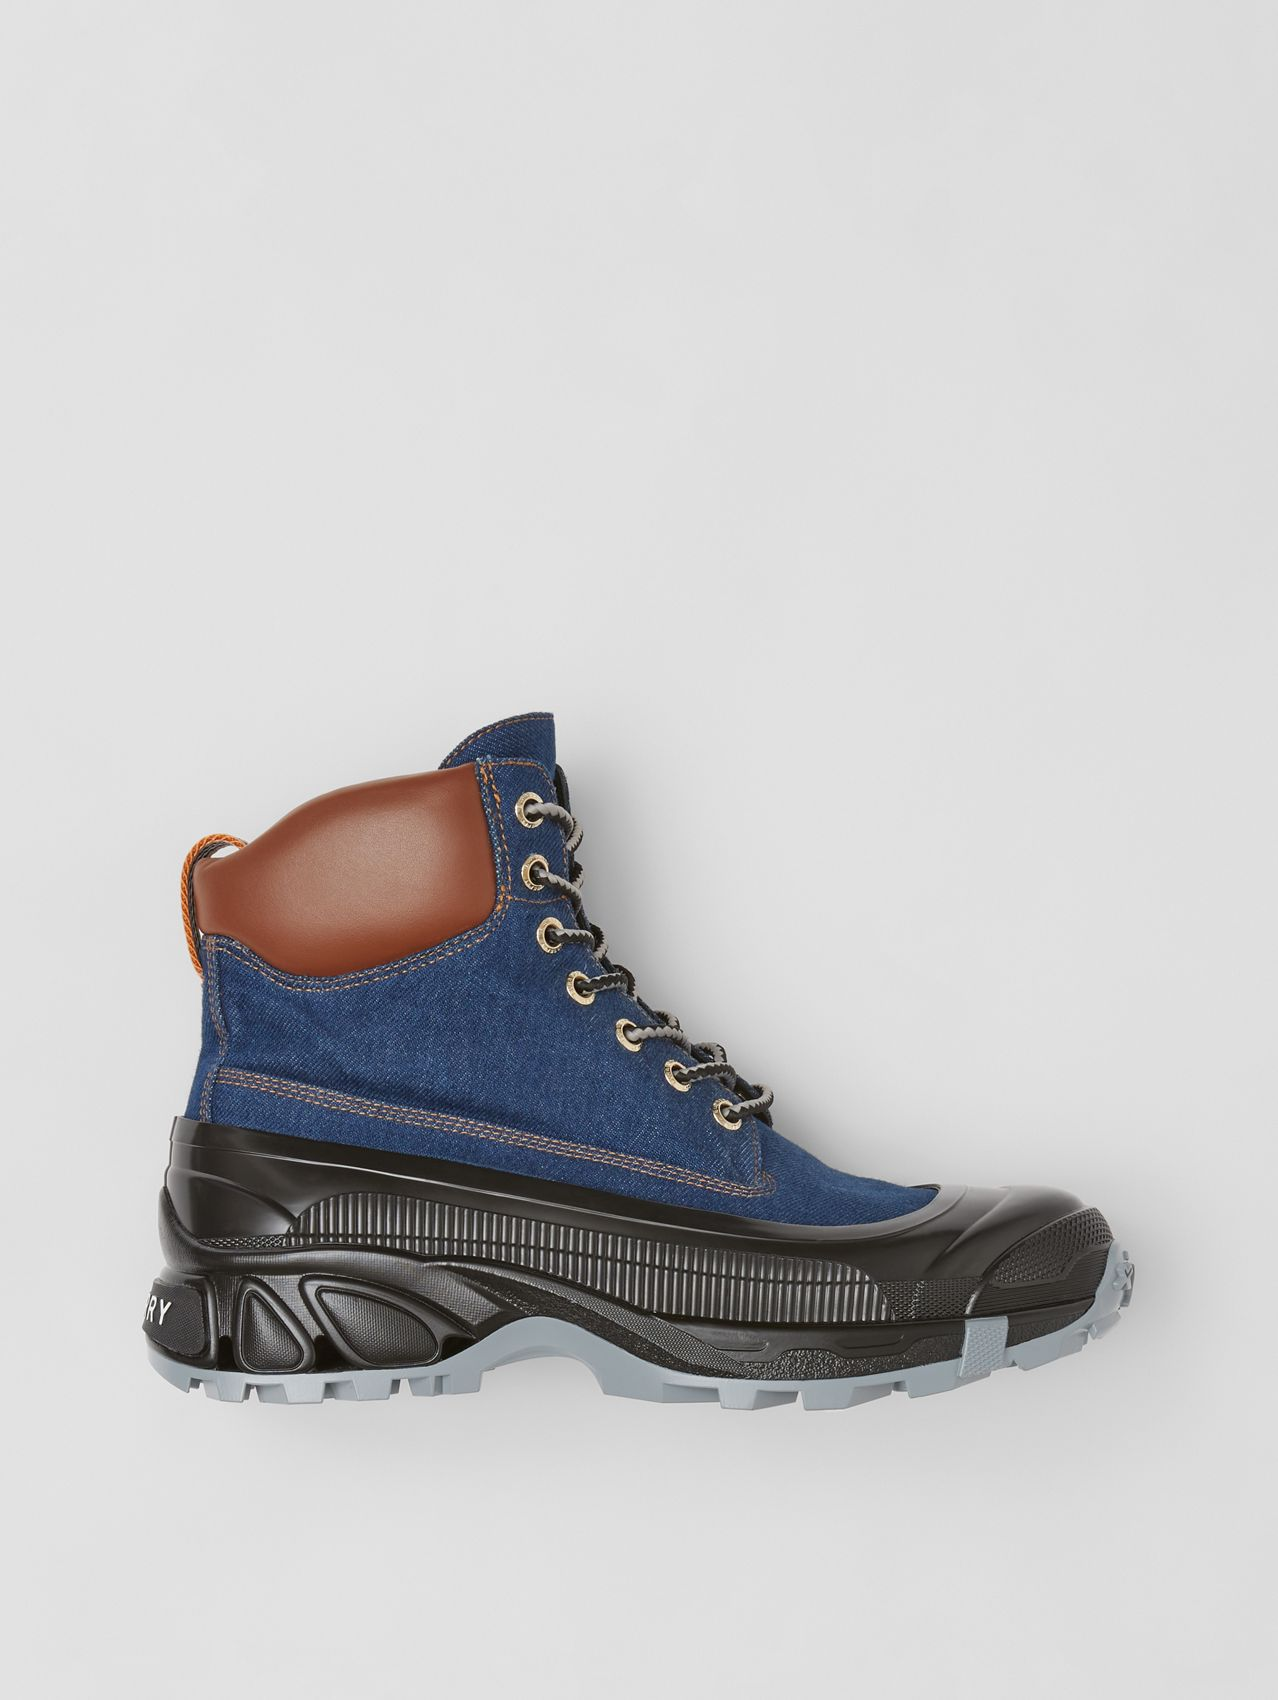 Contrast Sole Denim and Leather Boots in Dark Canvas Blue